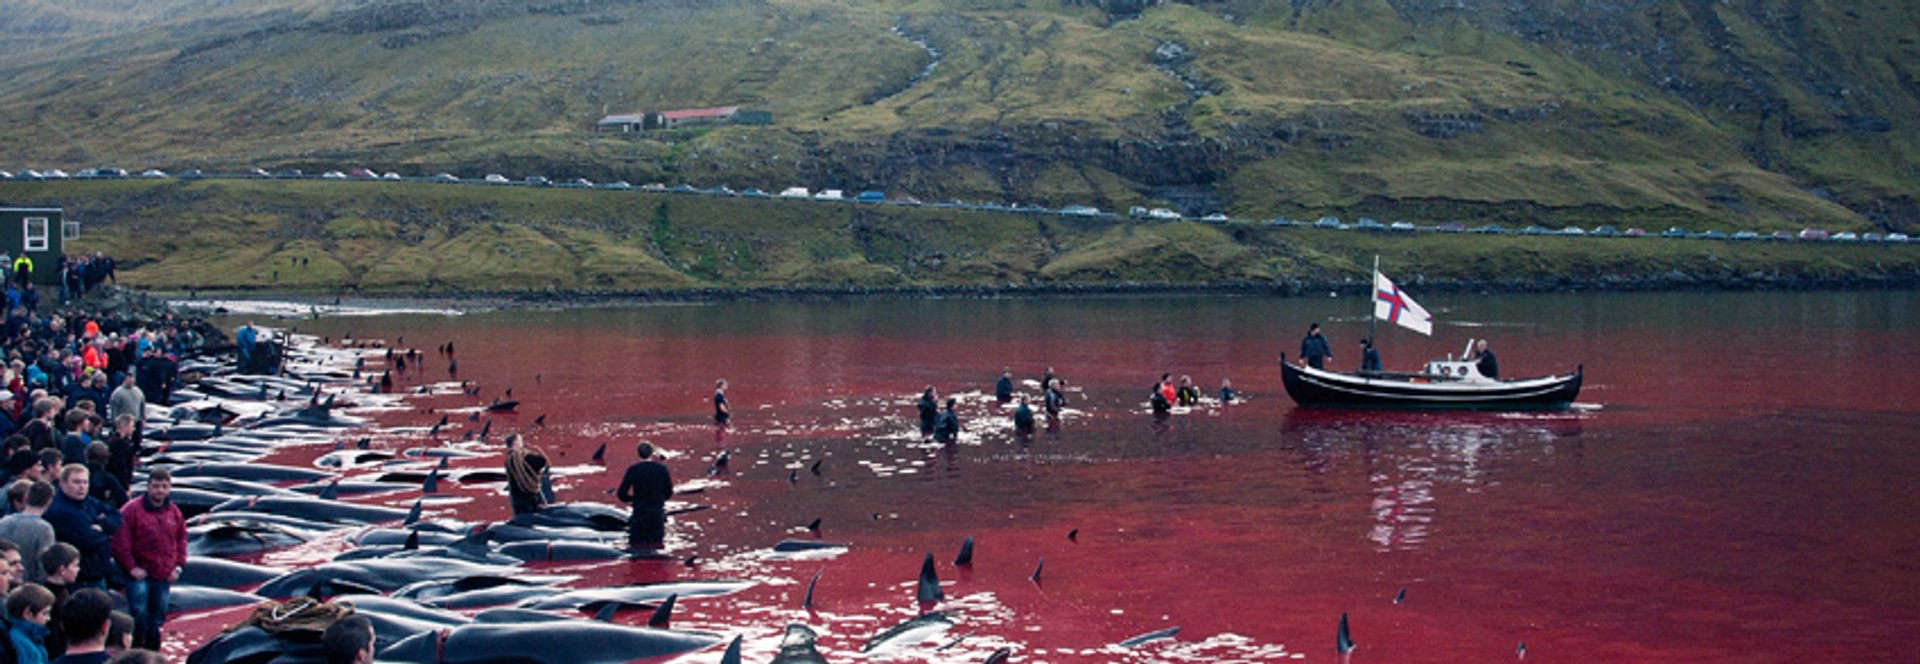 Tradition or Savagery? Grindadráp! in Faroe Islands - Best Season 2019